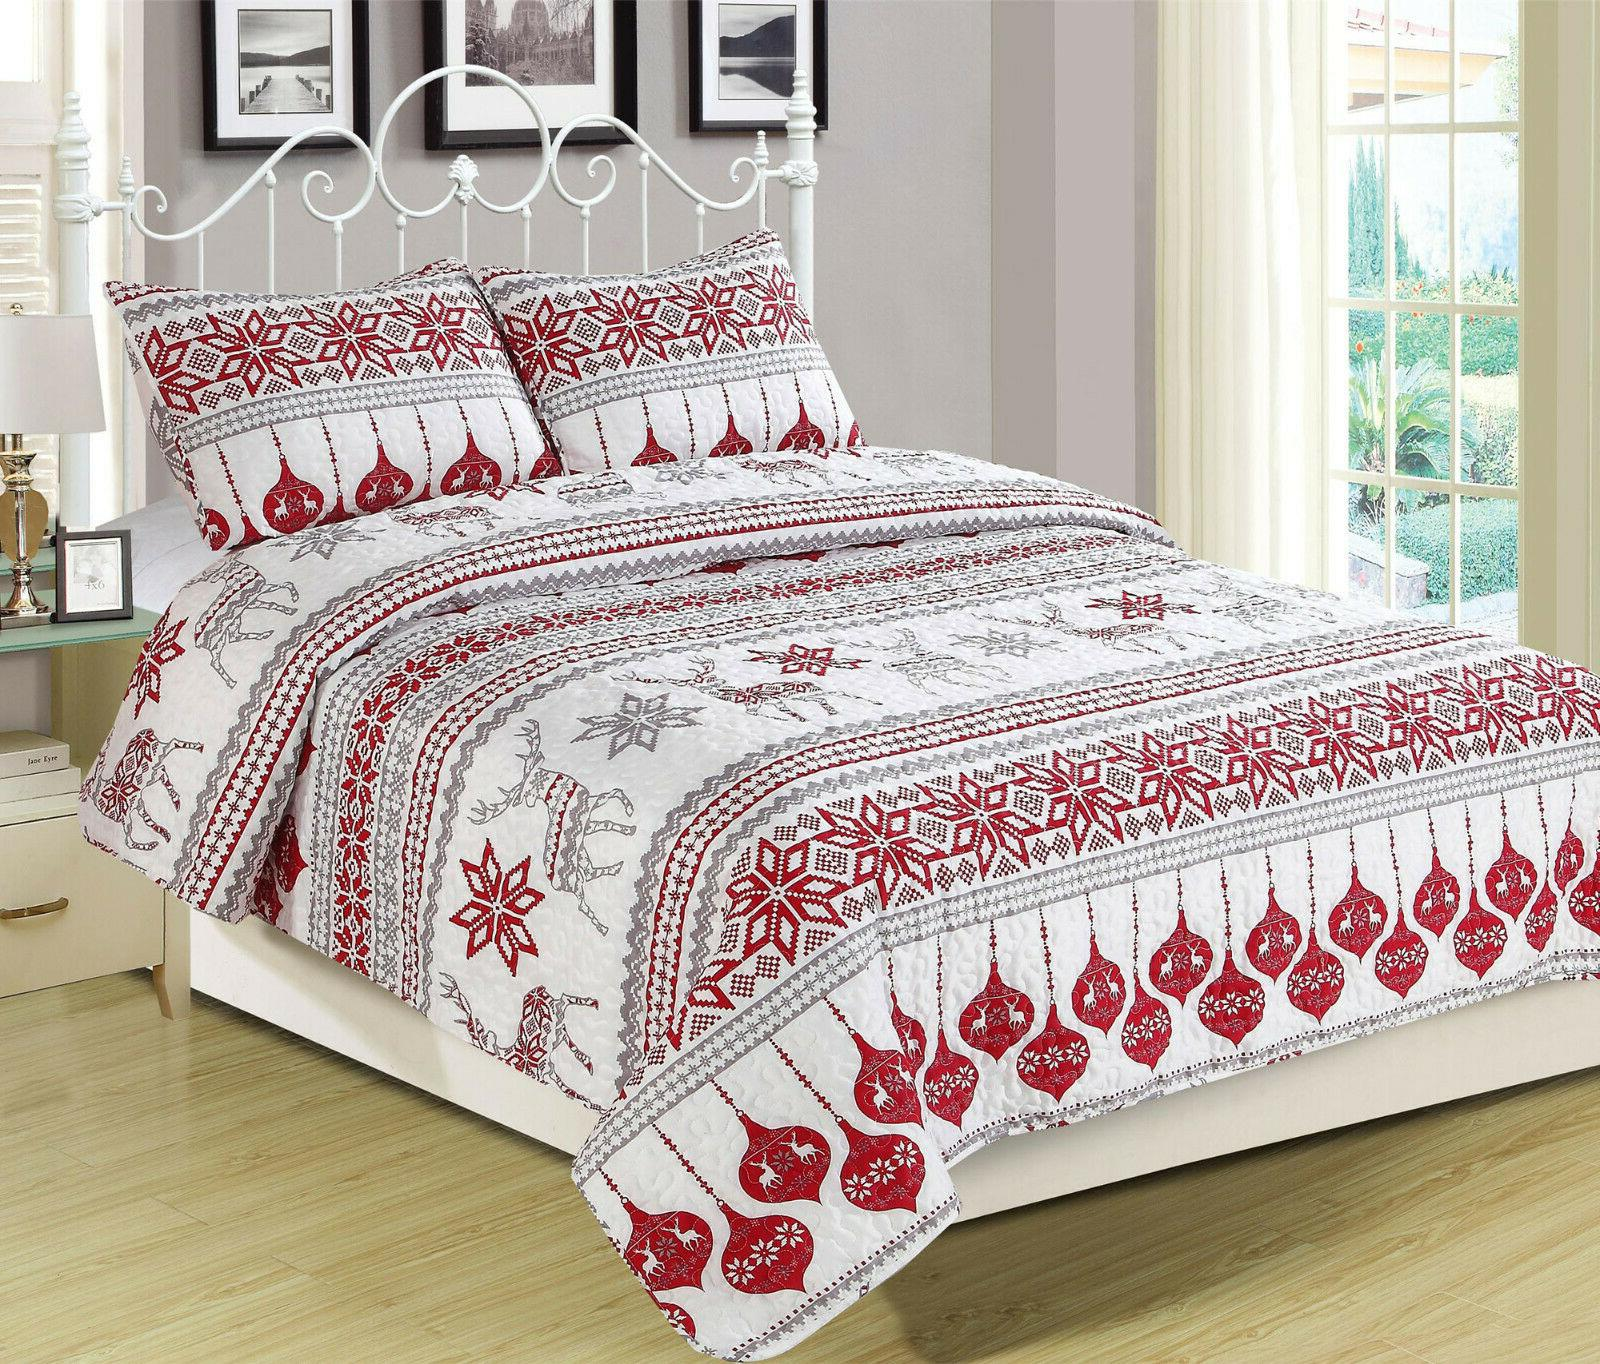 winter holiday quilt bedding set red grey